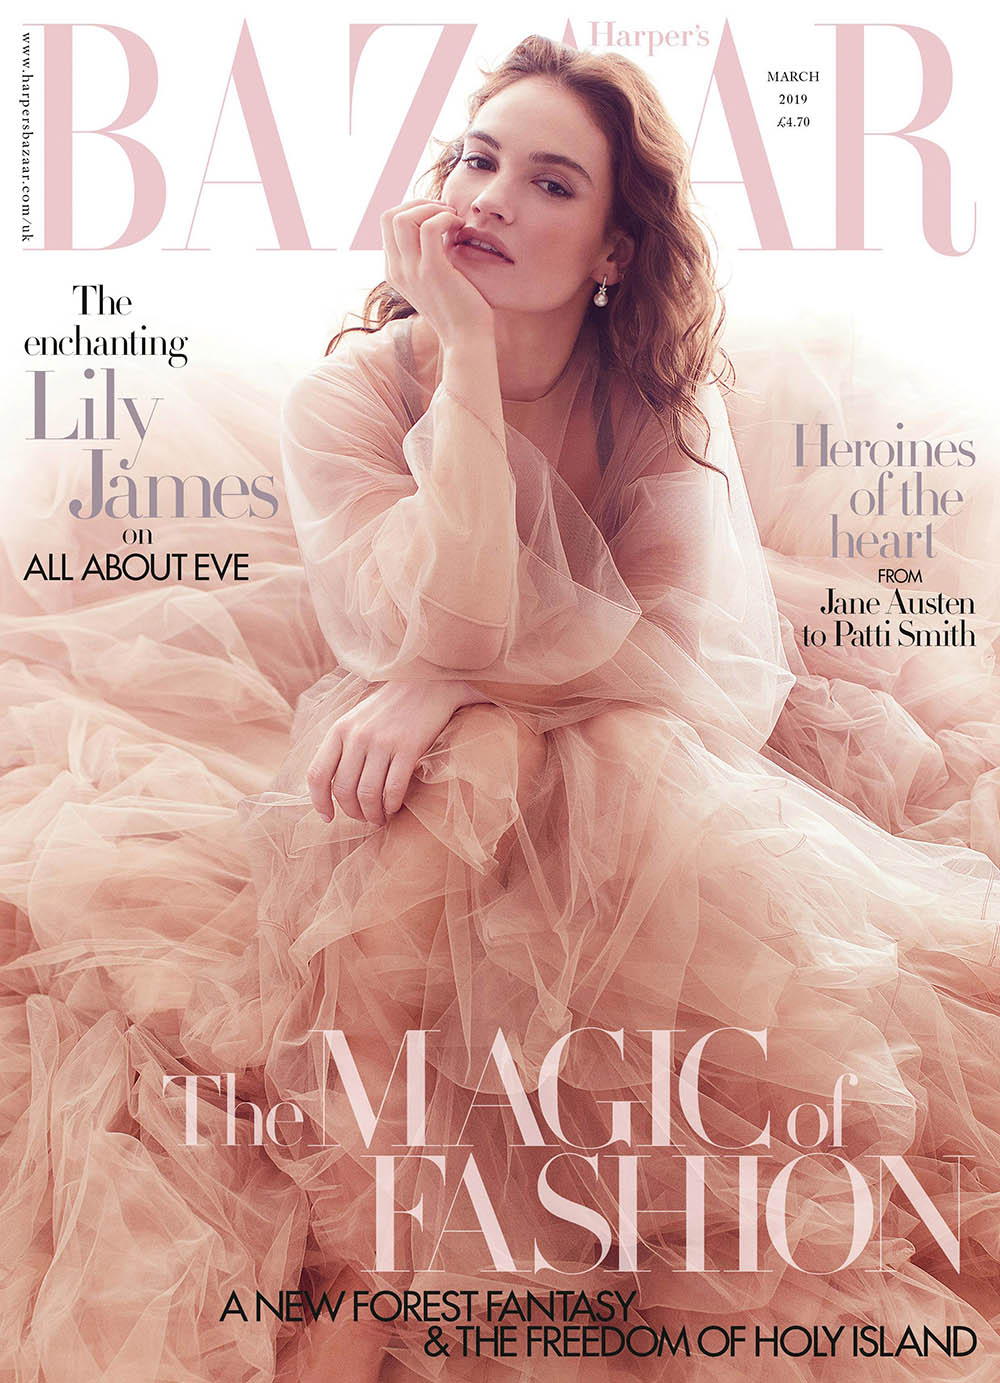 Lily James covers Harper's Bazaar UK March 2019 by Alexi Lubomirski